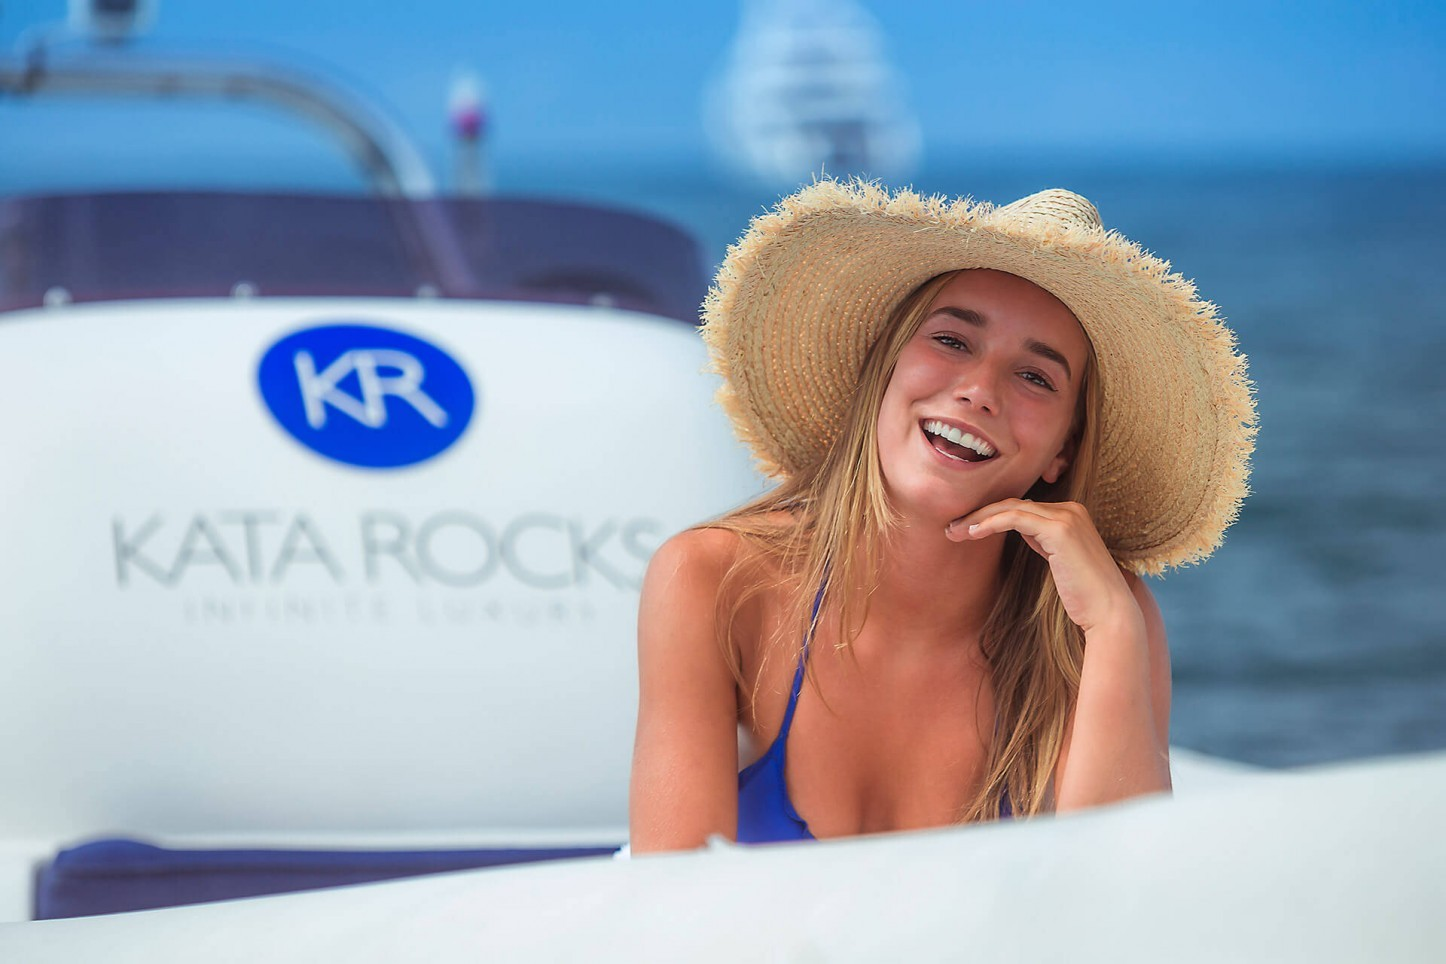 Kata Rocks's RIB cruise experiences